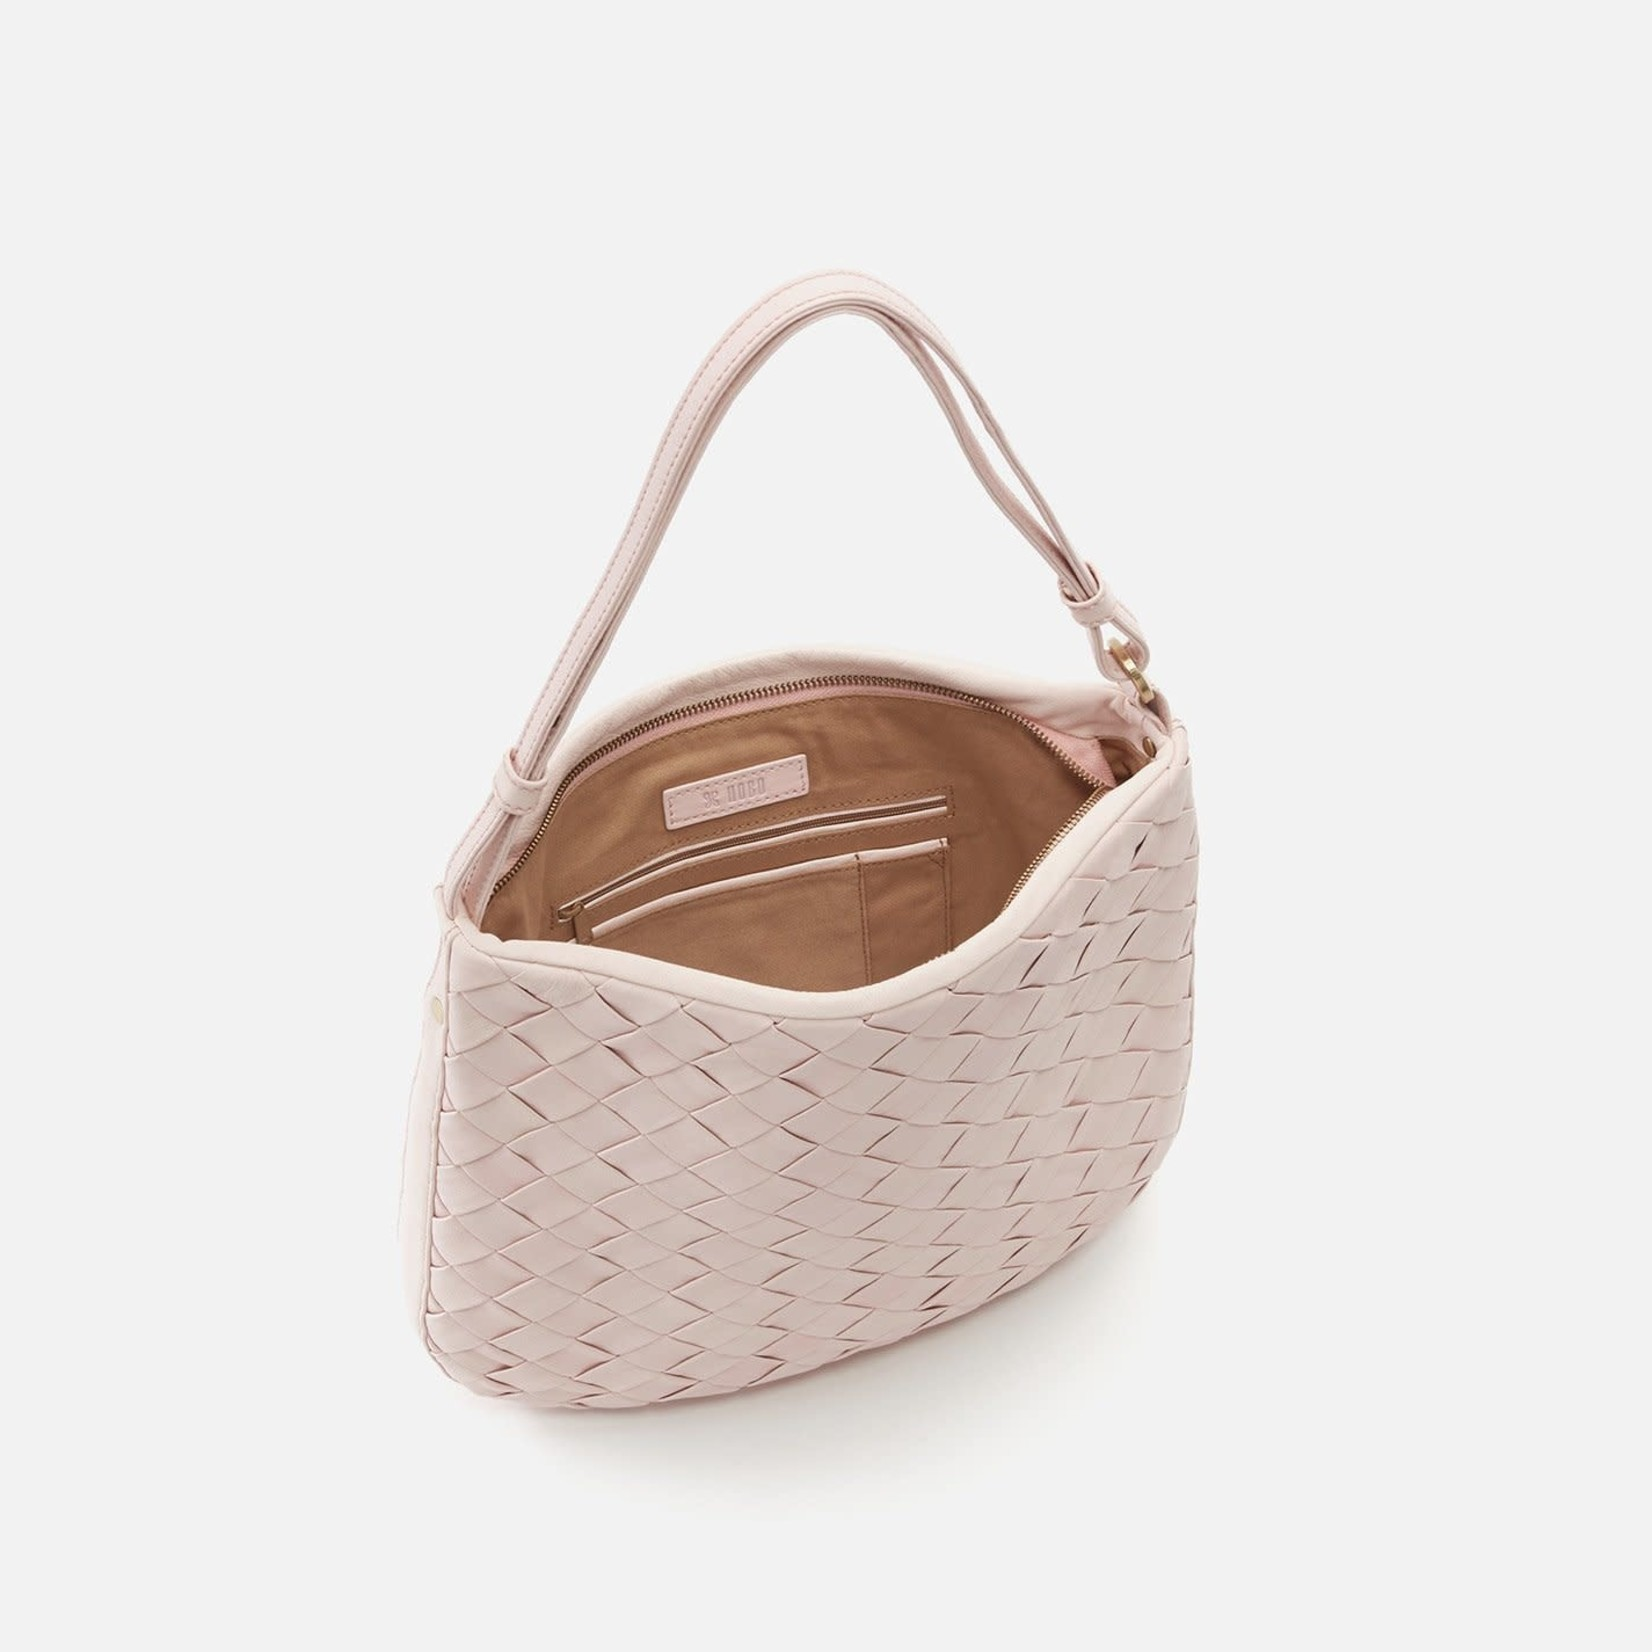 HOBO Merge Pink Soft Hide Leather Handbag